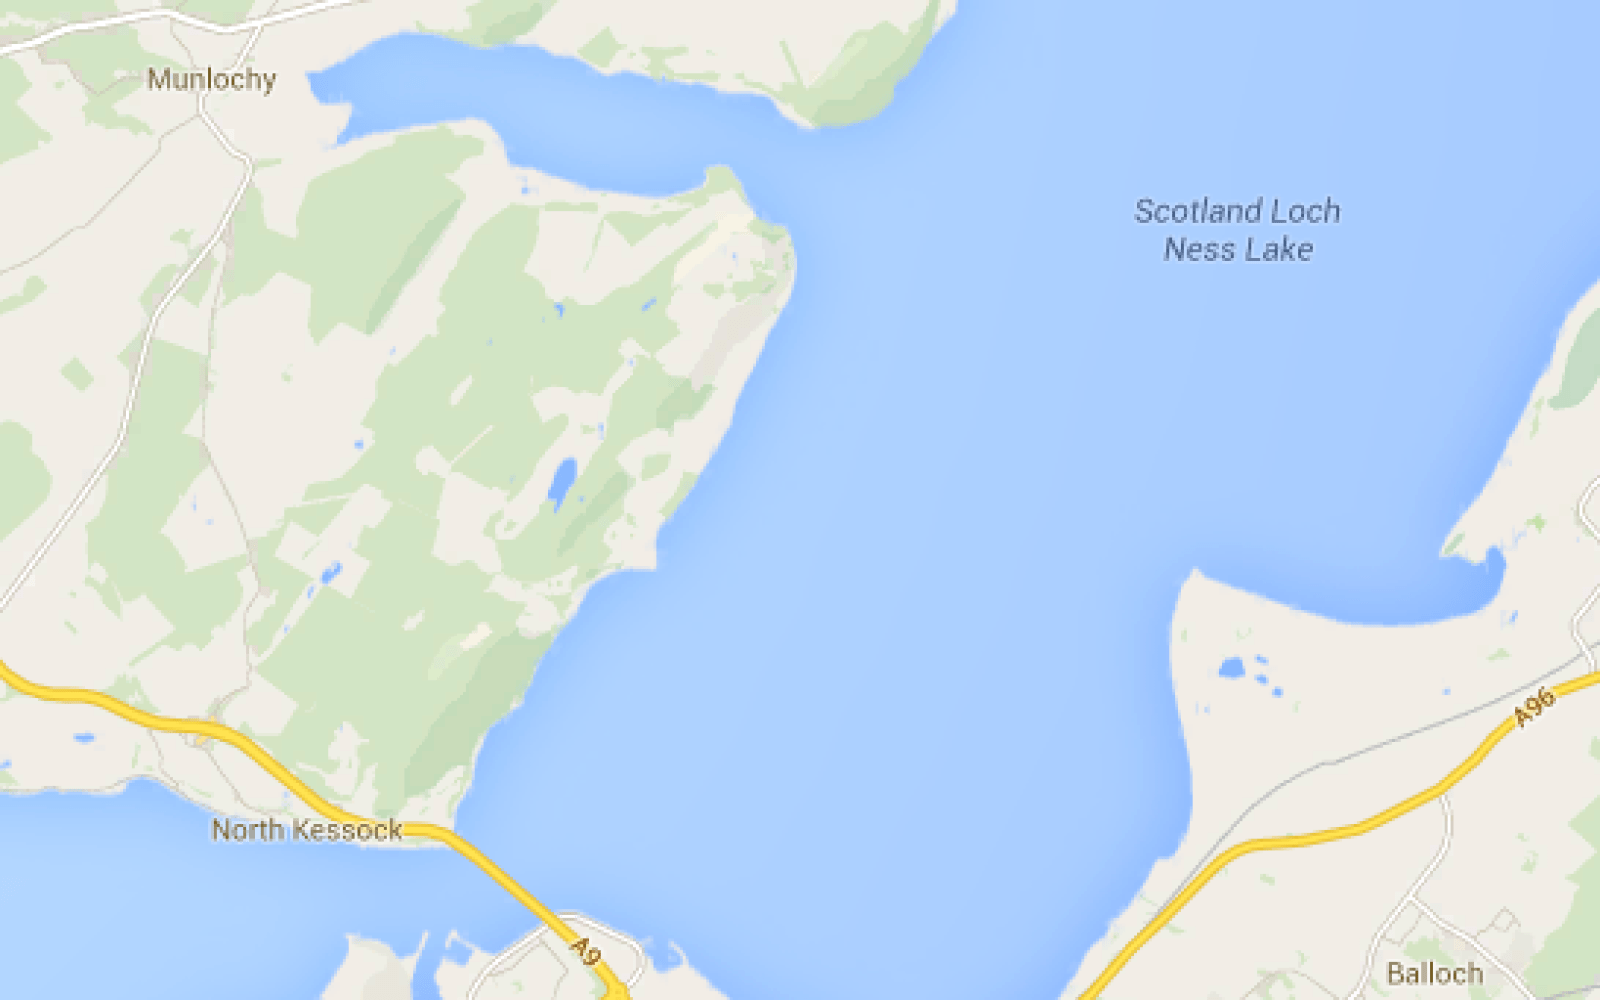 Google Maps mixup falsely identifies Moray Firth as \'Loch Ness Lake ...